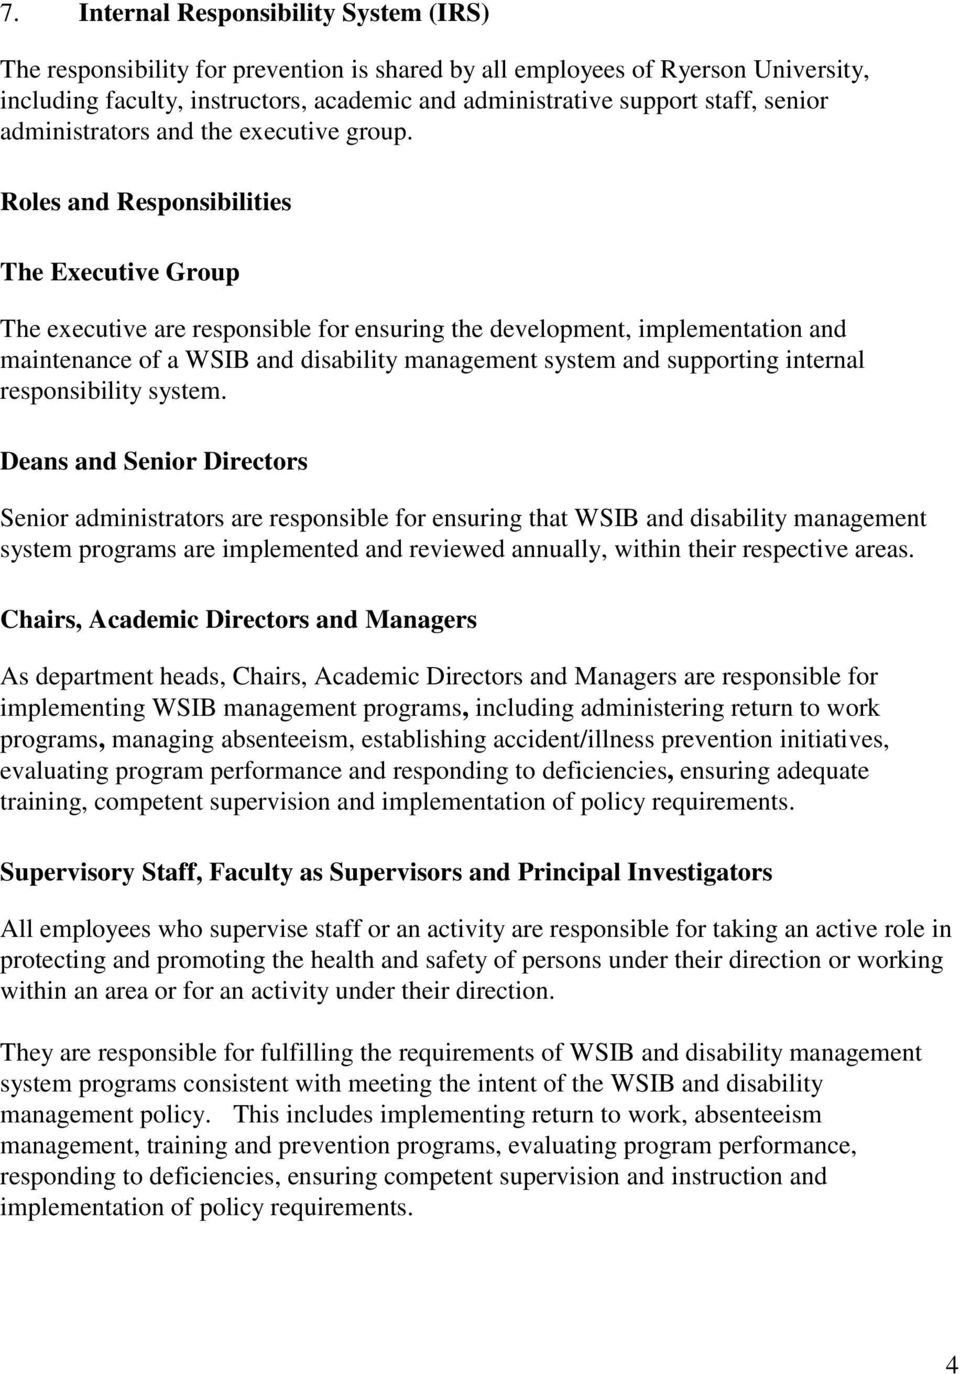 Roles and Responsibilities The Executive Group The executive are responsible for ensuring the development, implementation and maintenance of a WSIB and disability management system and supporting